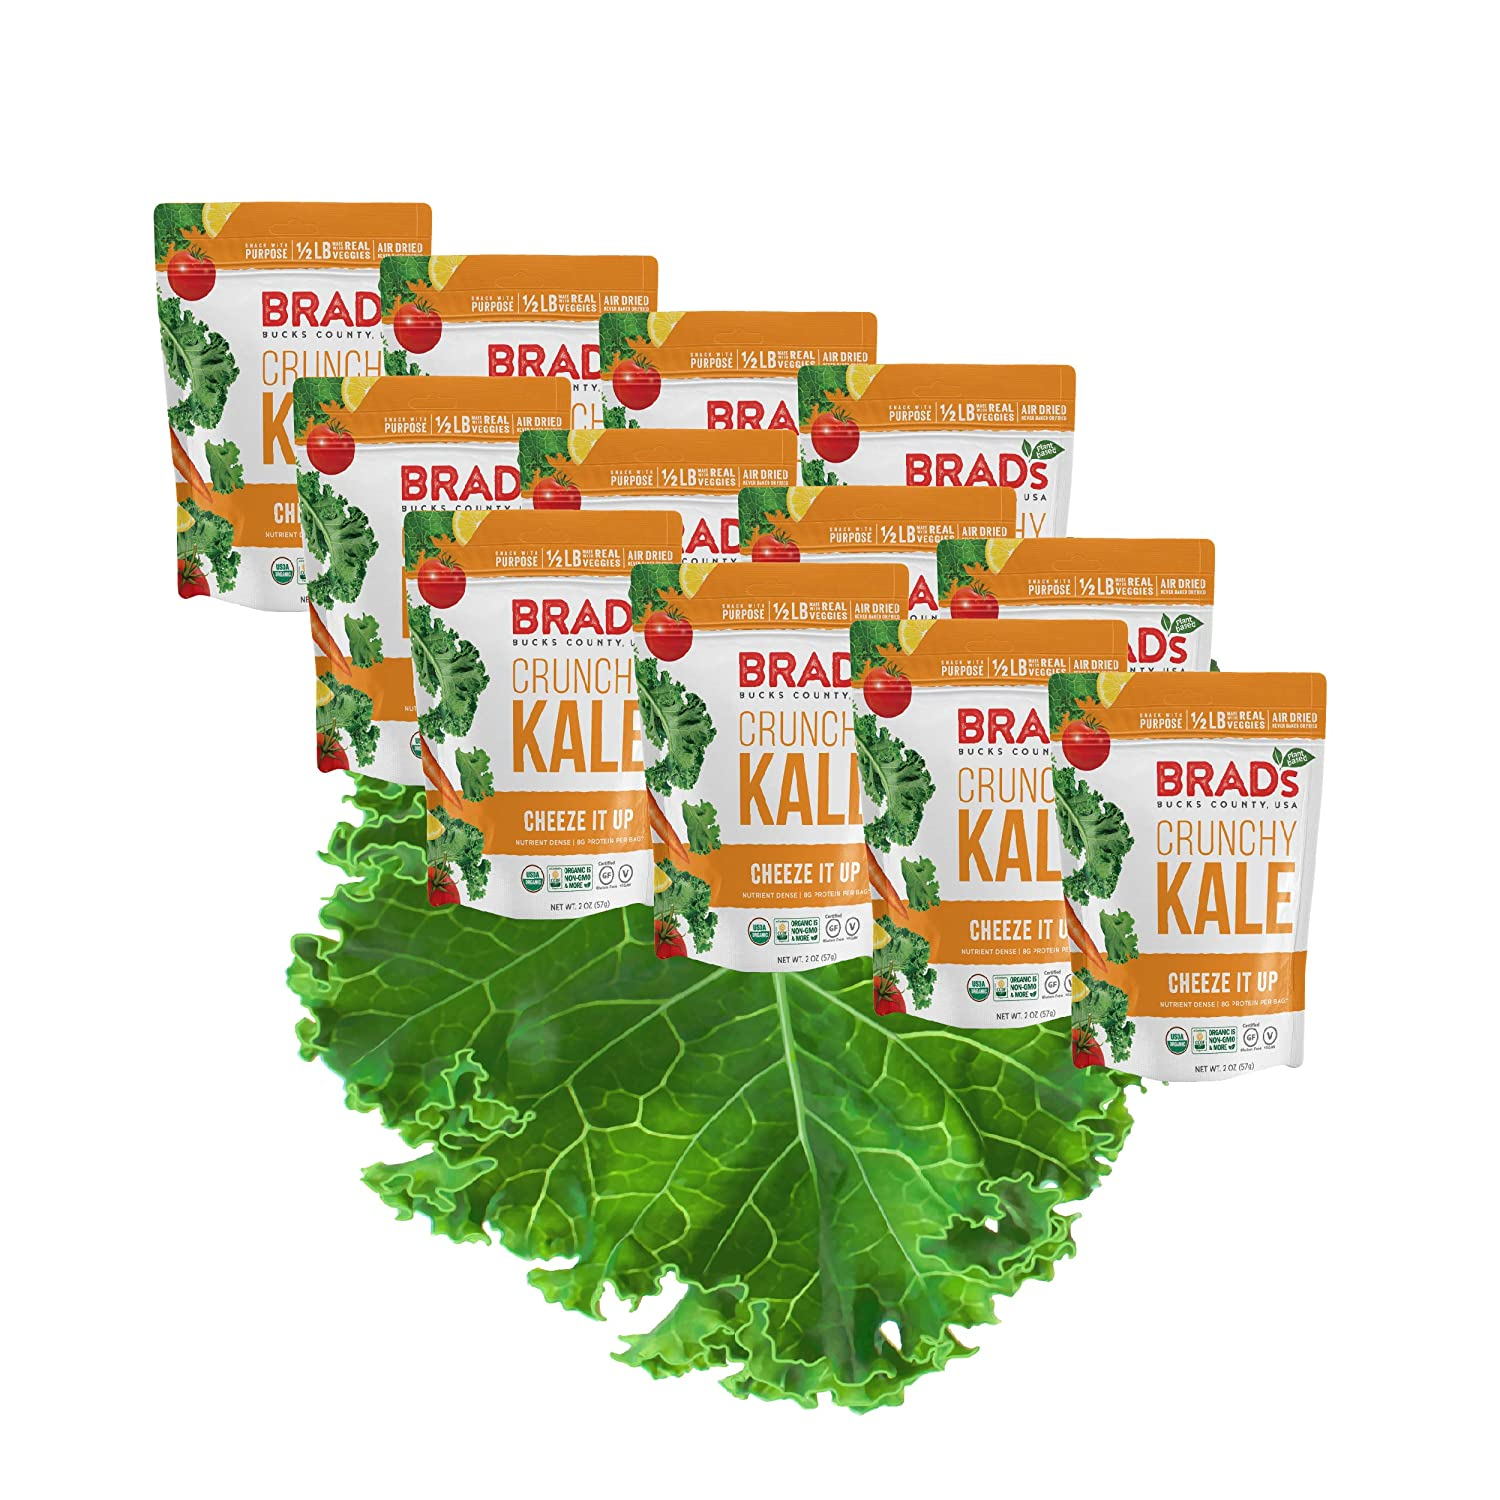 Brad'S Plant Based Organic Crunchy Kale, Cheeze es Up, 12 Bags, 24 Servings Total